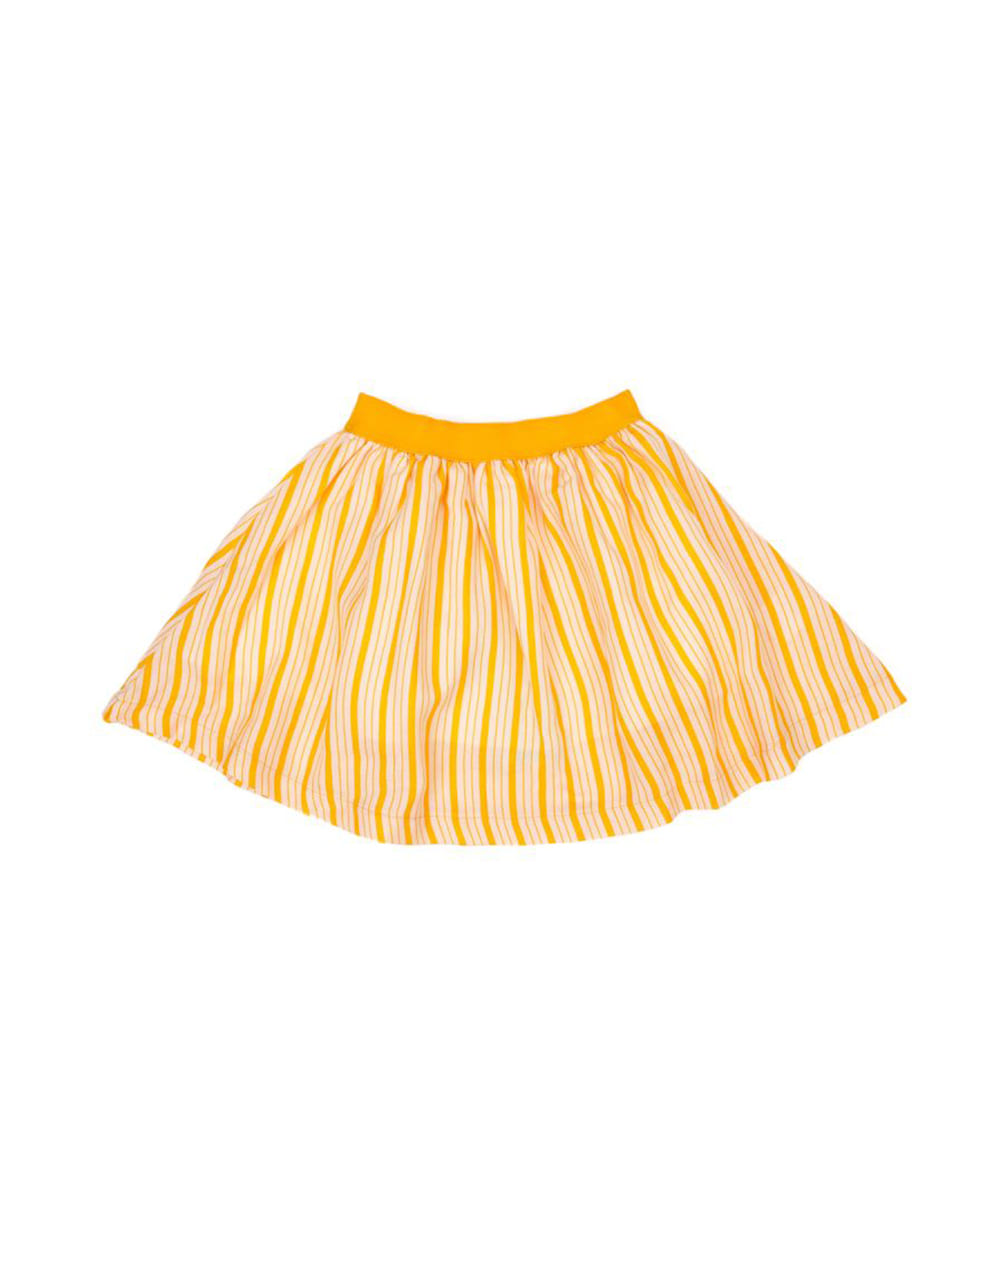 LILY BALOU  Adele skirt  Juicy Stripes